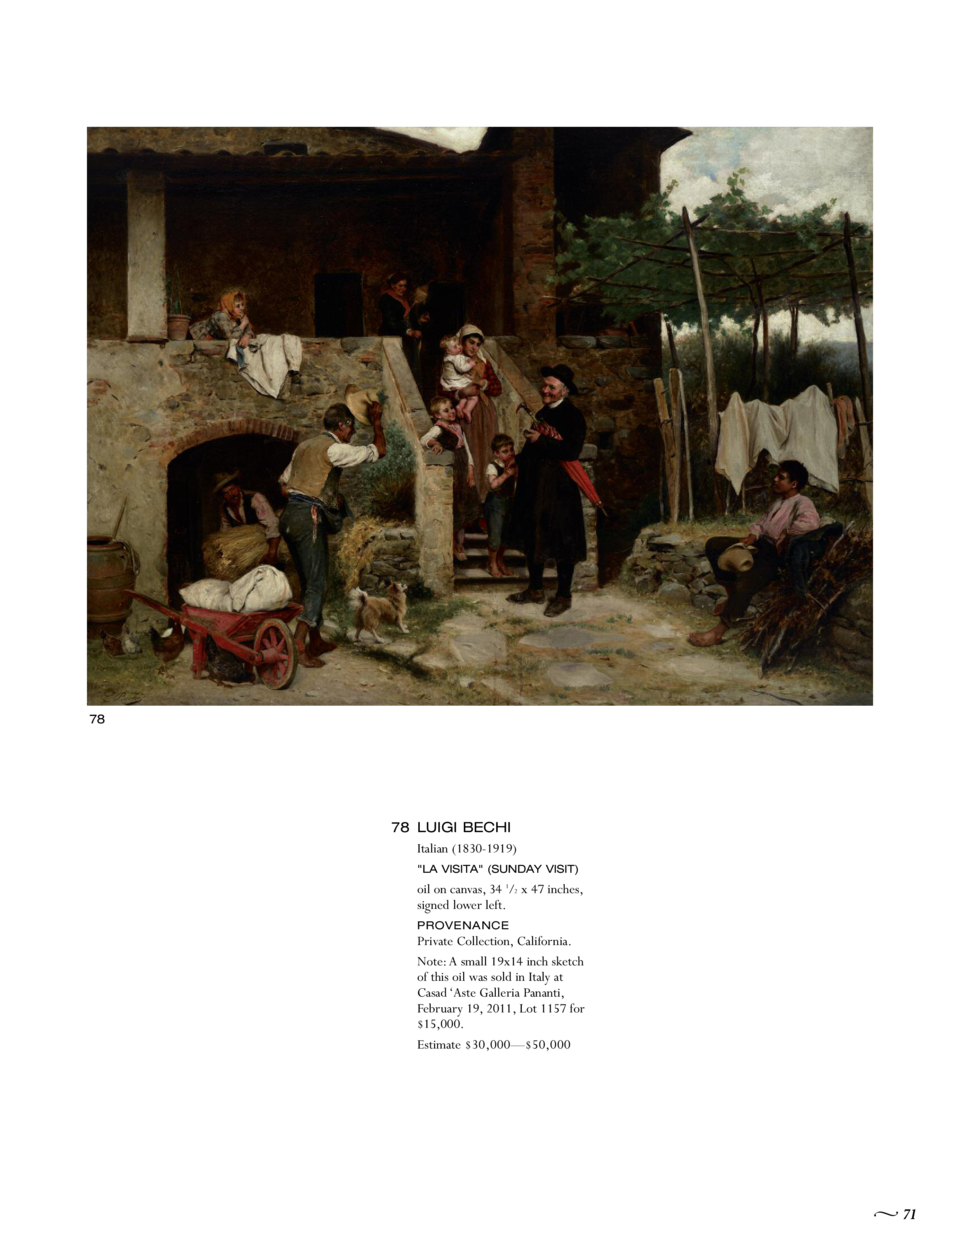 78  78 LUIGI BECHI Italian  1830-1919   LA VISITA   SUNDAY VISIT   oil on canvas, 34 1 2 x 47 inches, signed lower left. P...